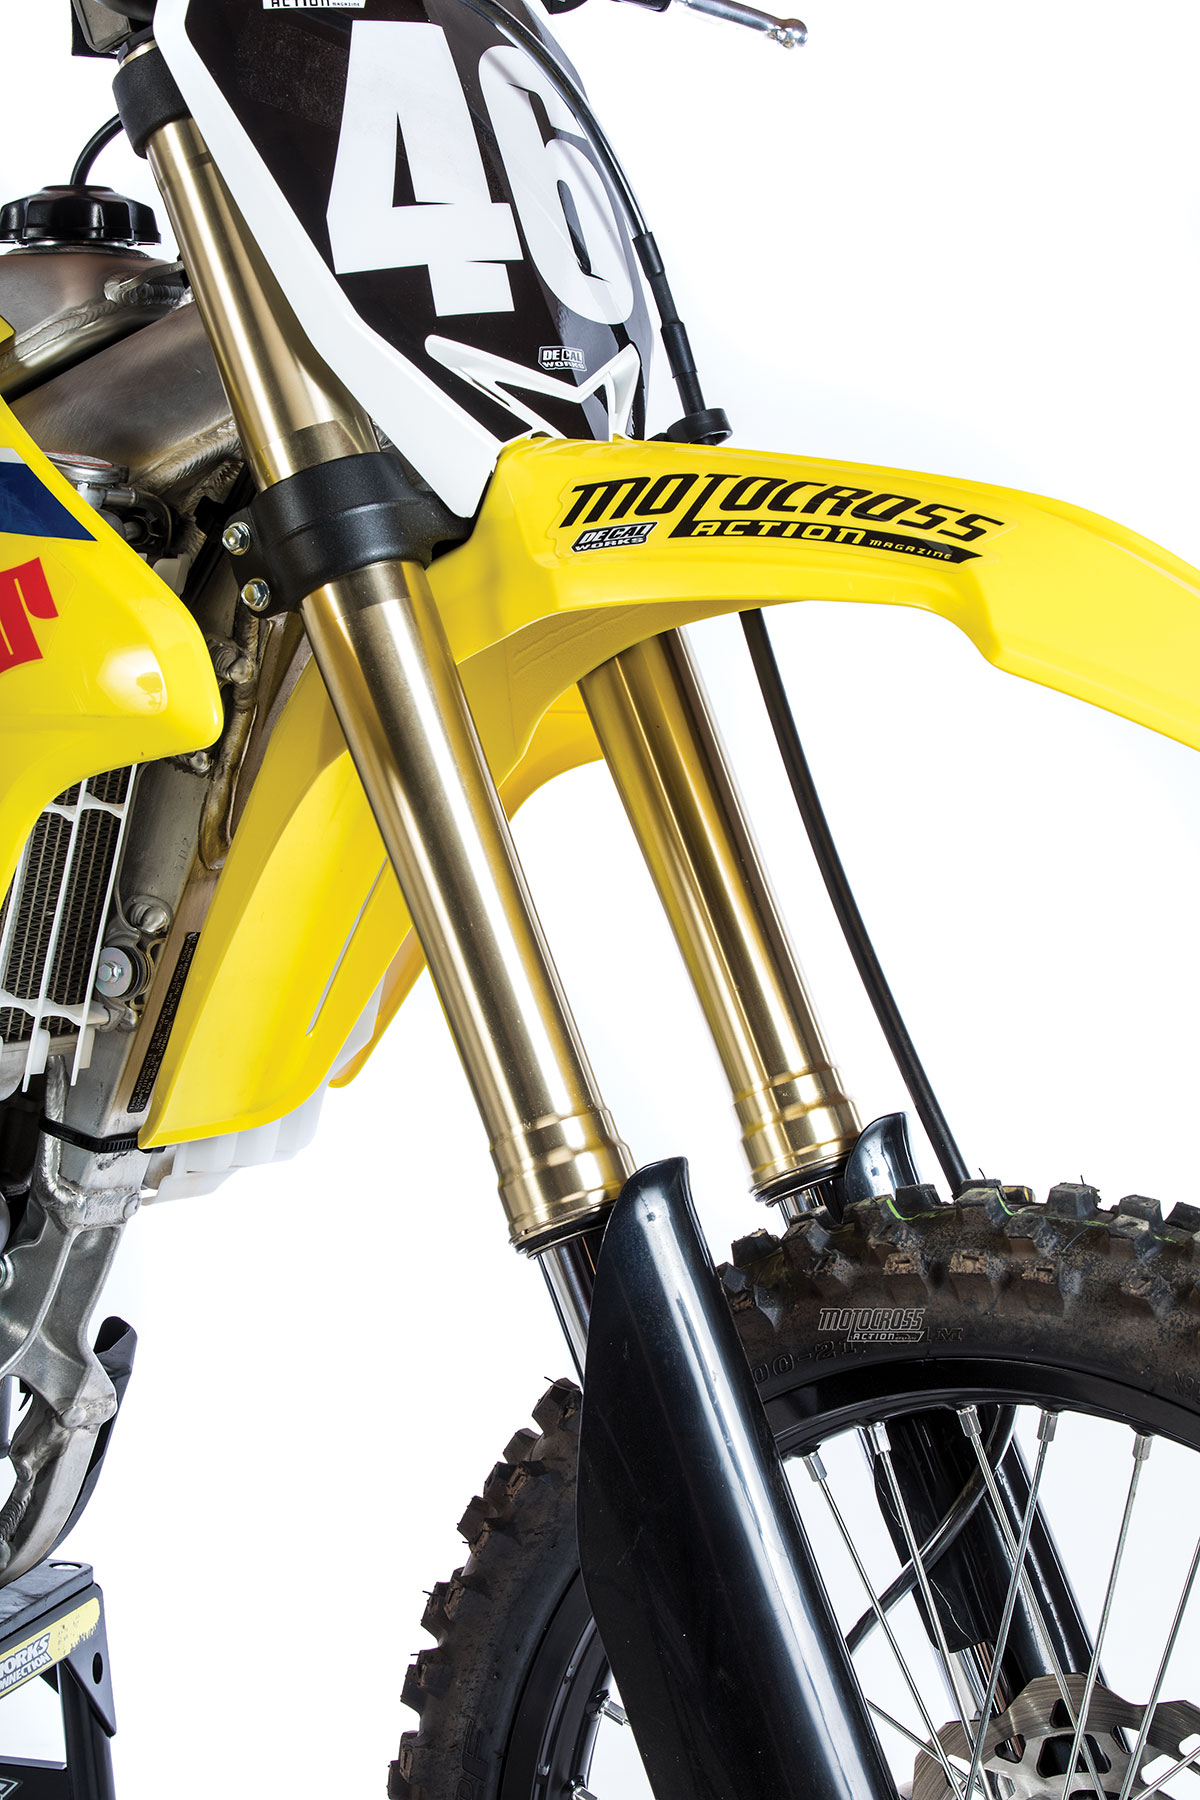 We like the low-pressure PSF-2 air forks. They have a standard air pressure  of 35 psi. It was too stiff. We ran 32 psi.